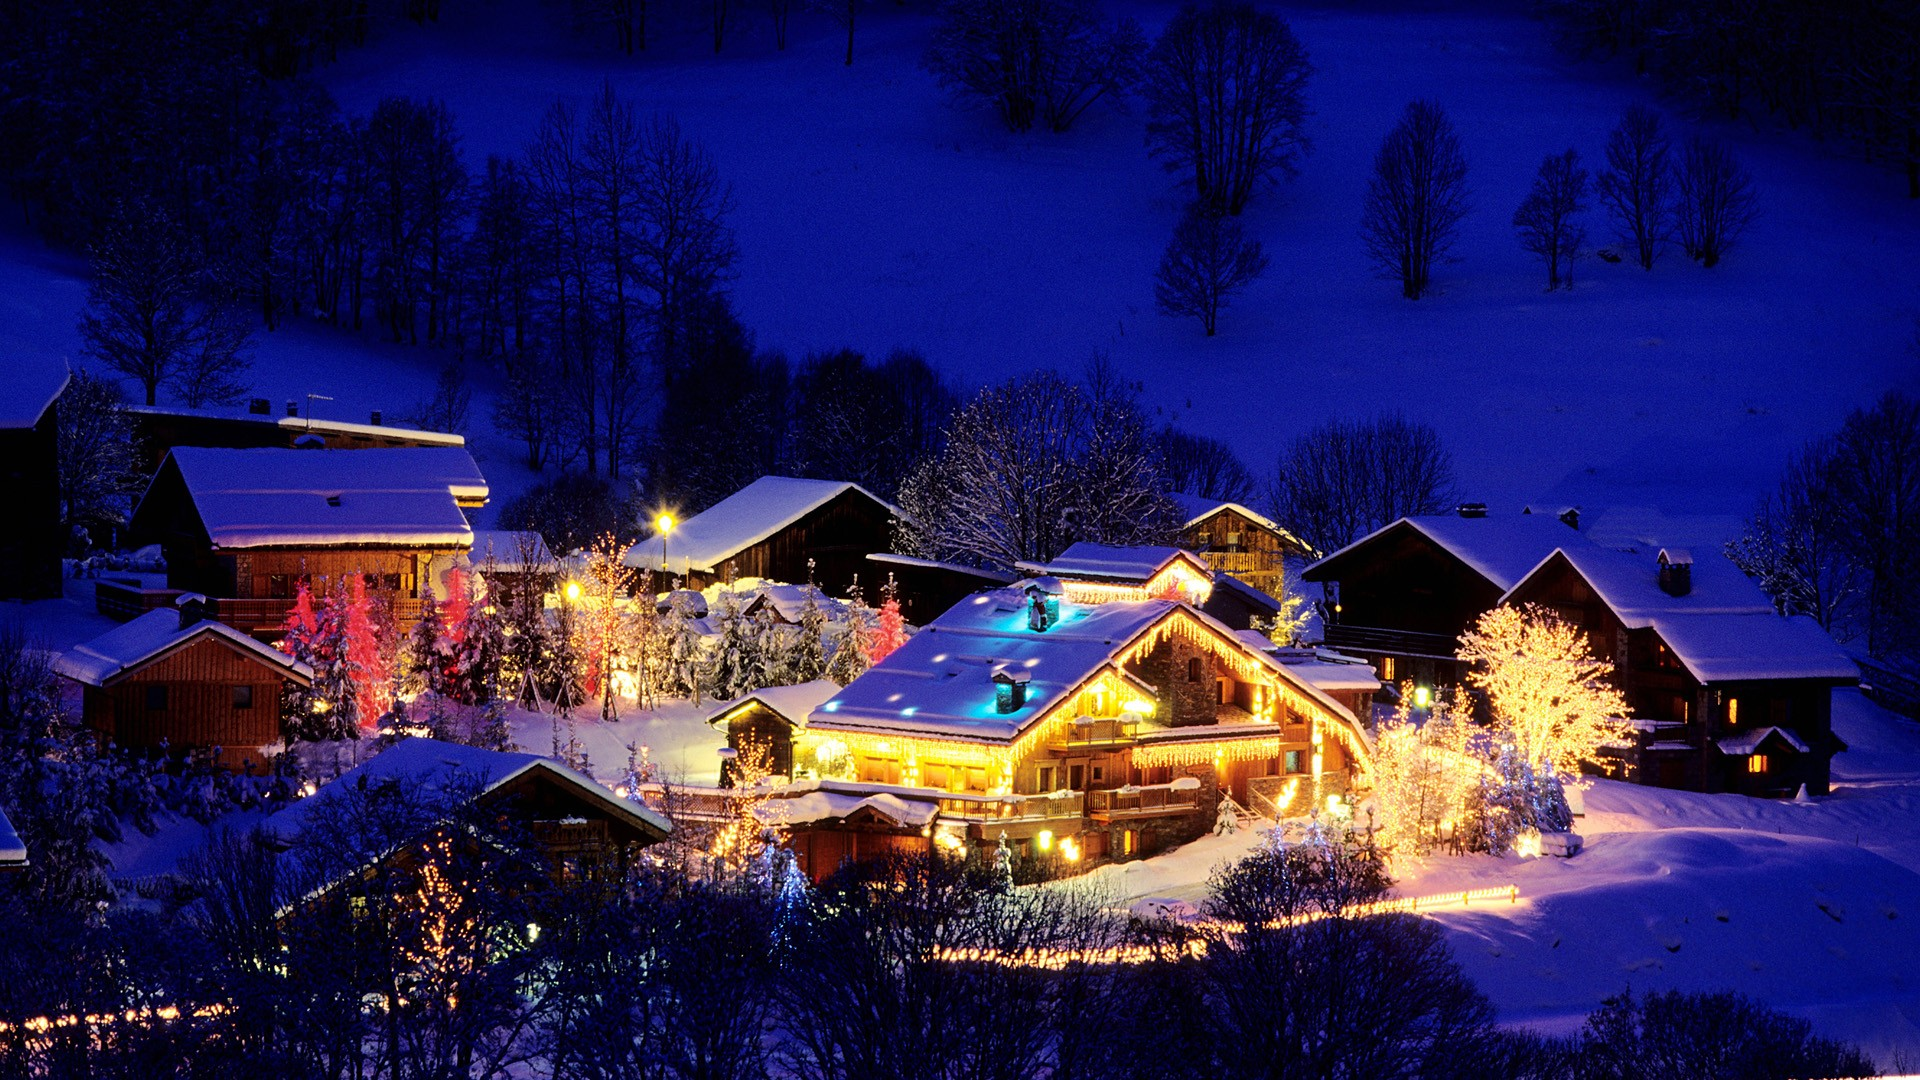 christmas wallpaper hd 8460 1920x1080 px ~ hdwallsource